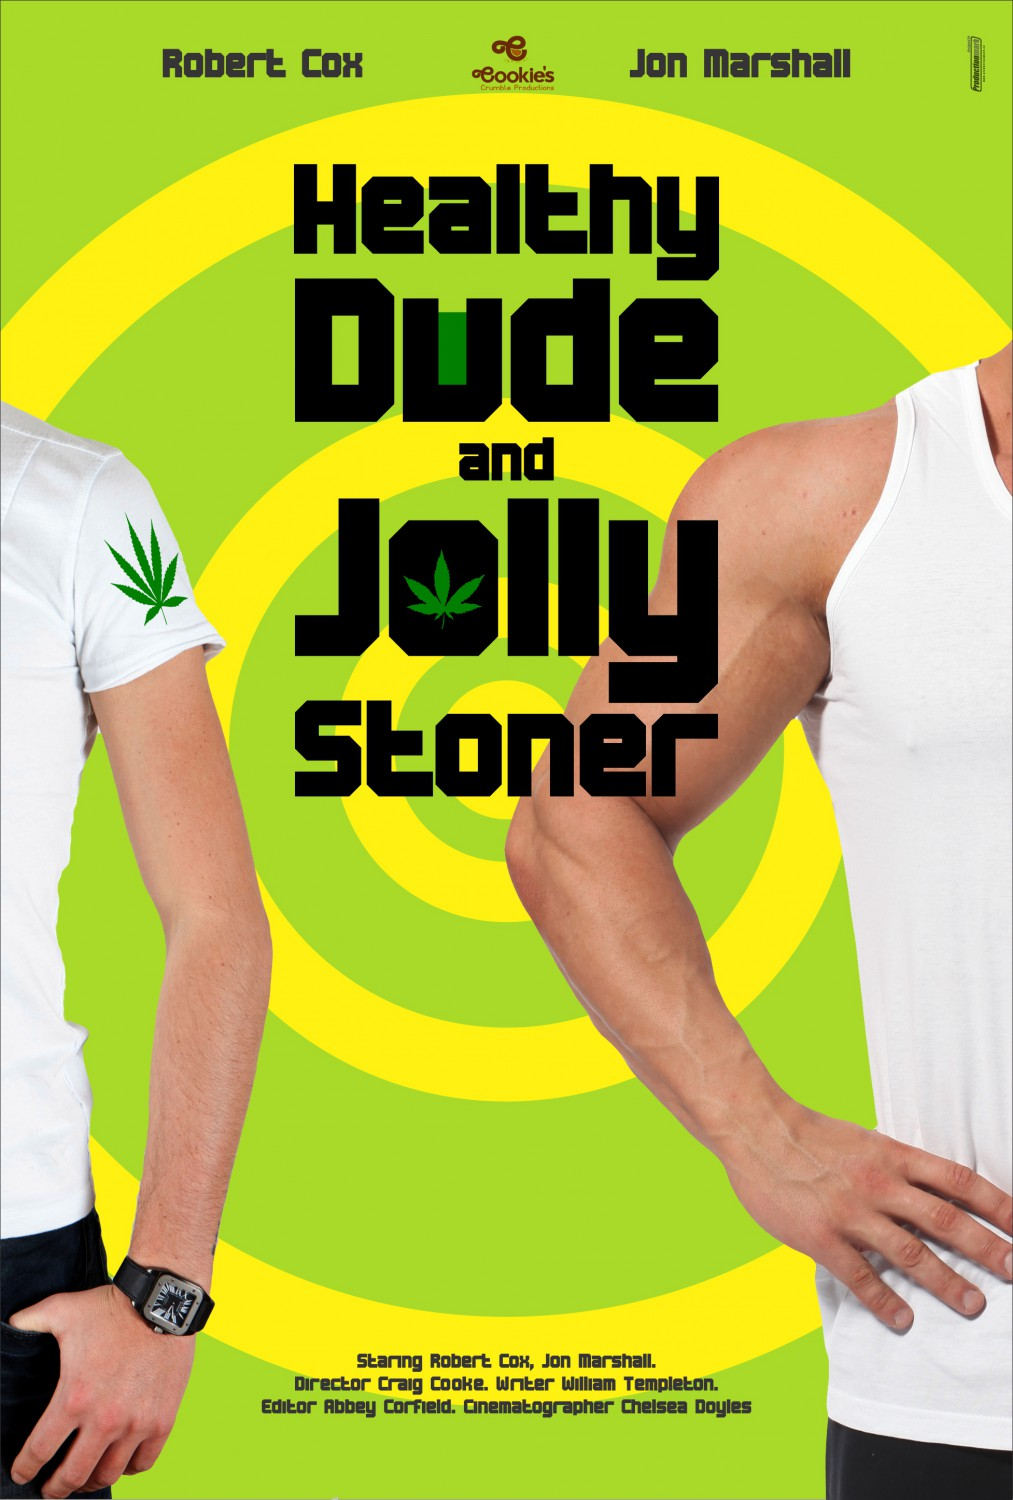 Productionmark-Services-Film-Poster-Design-Short-Film-Healthy-Dude-And-Jolly-Stoner